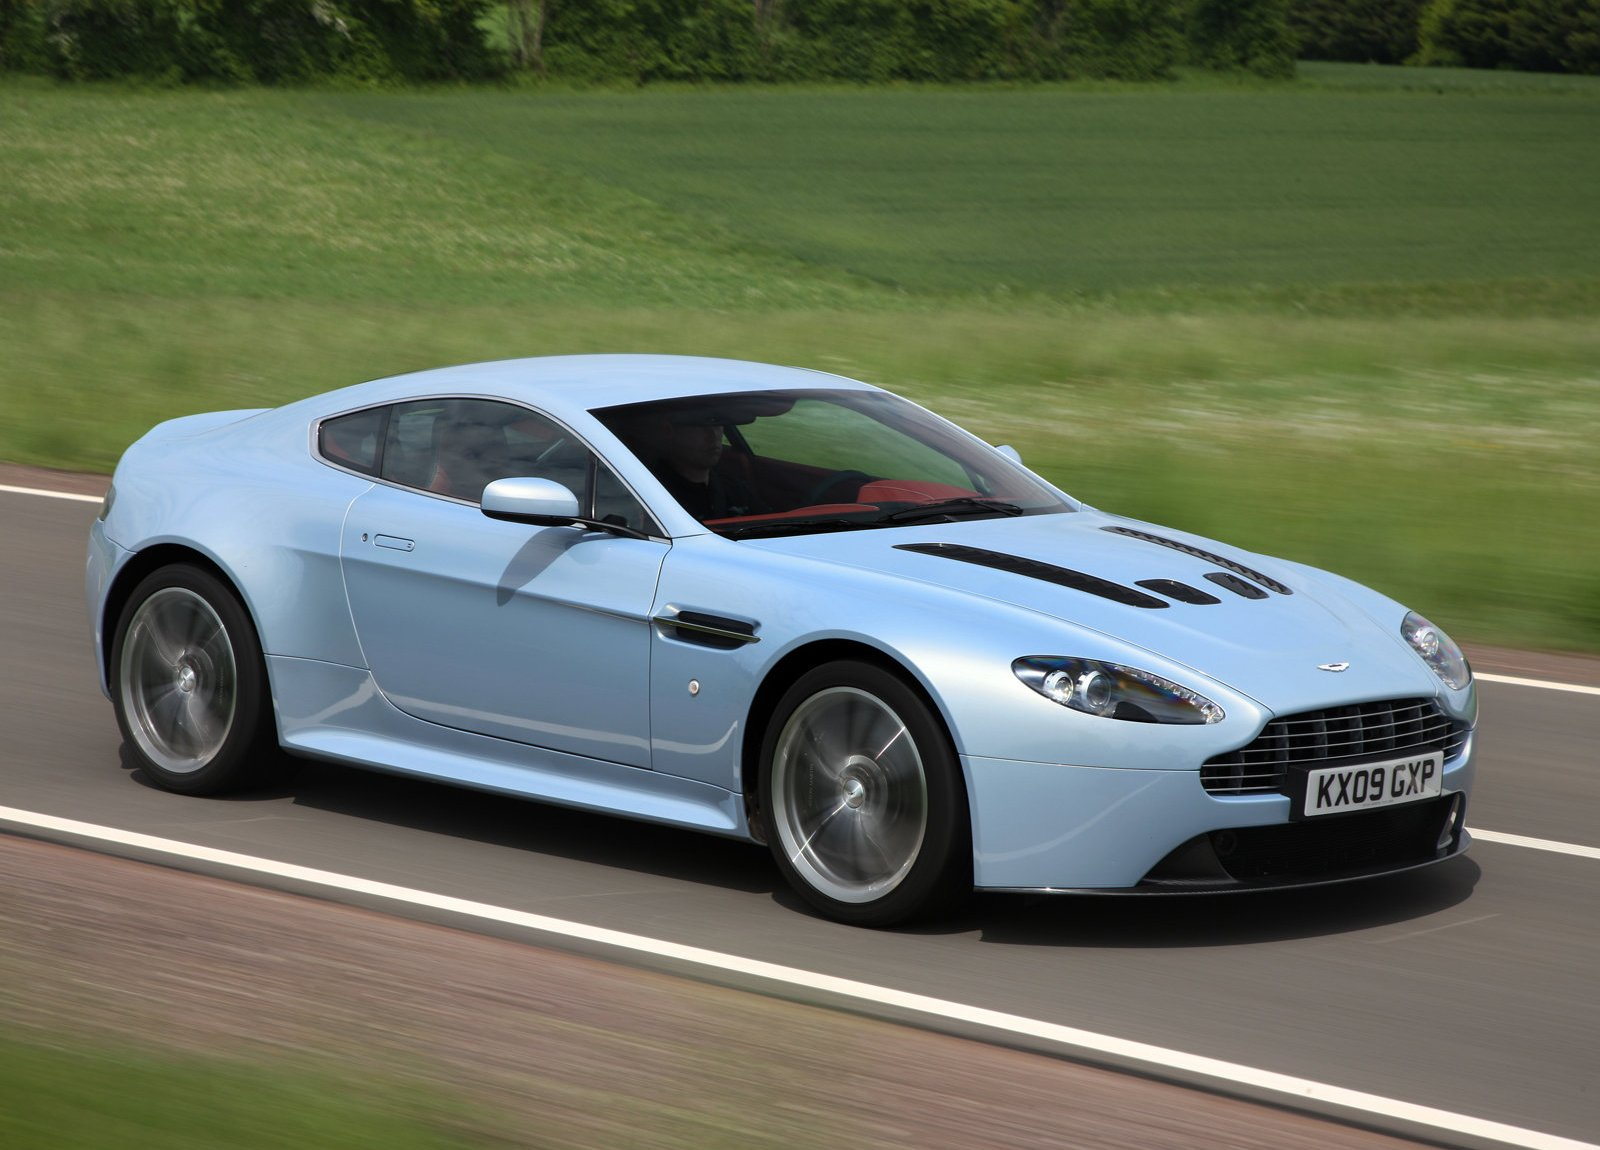 2010 Aston Martin V12 Vantage Coupe 2-door